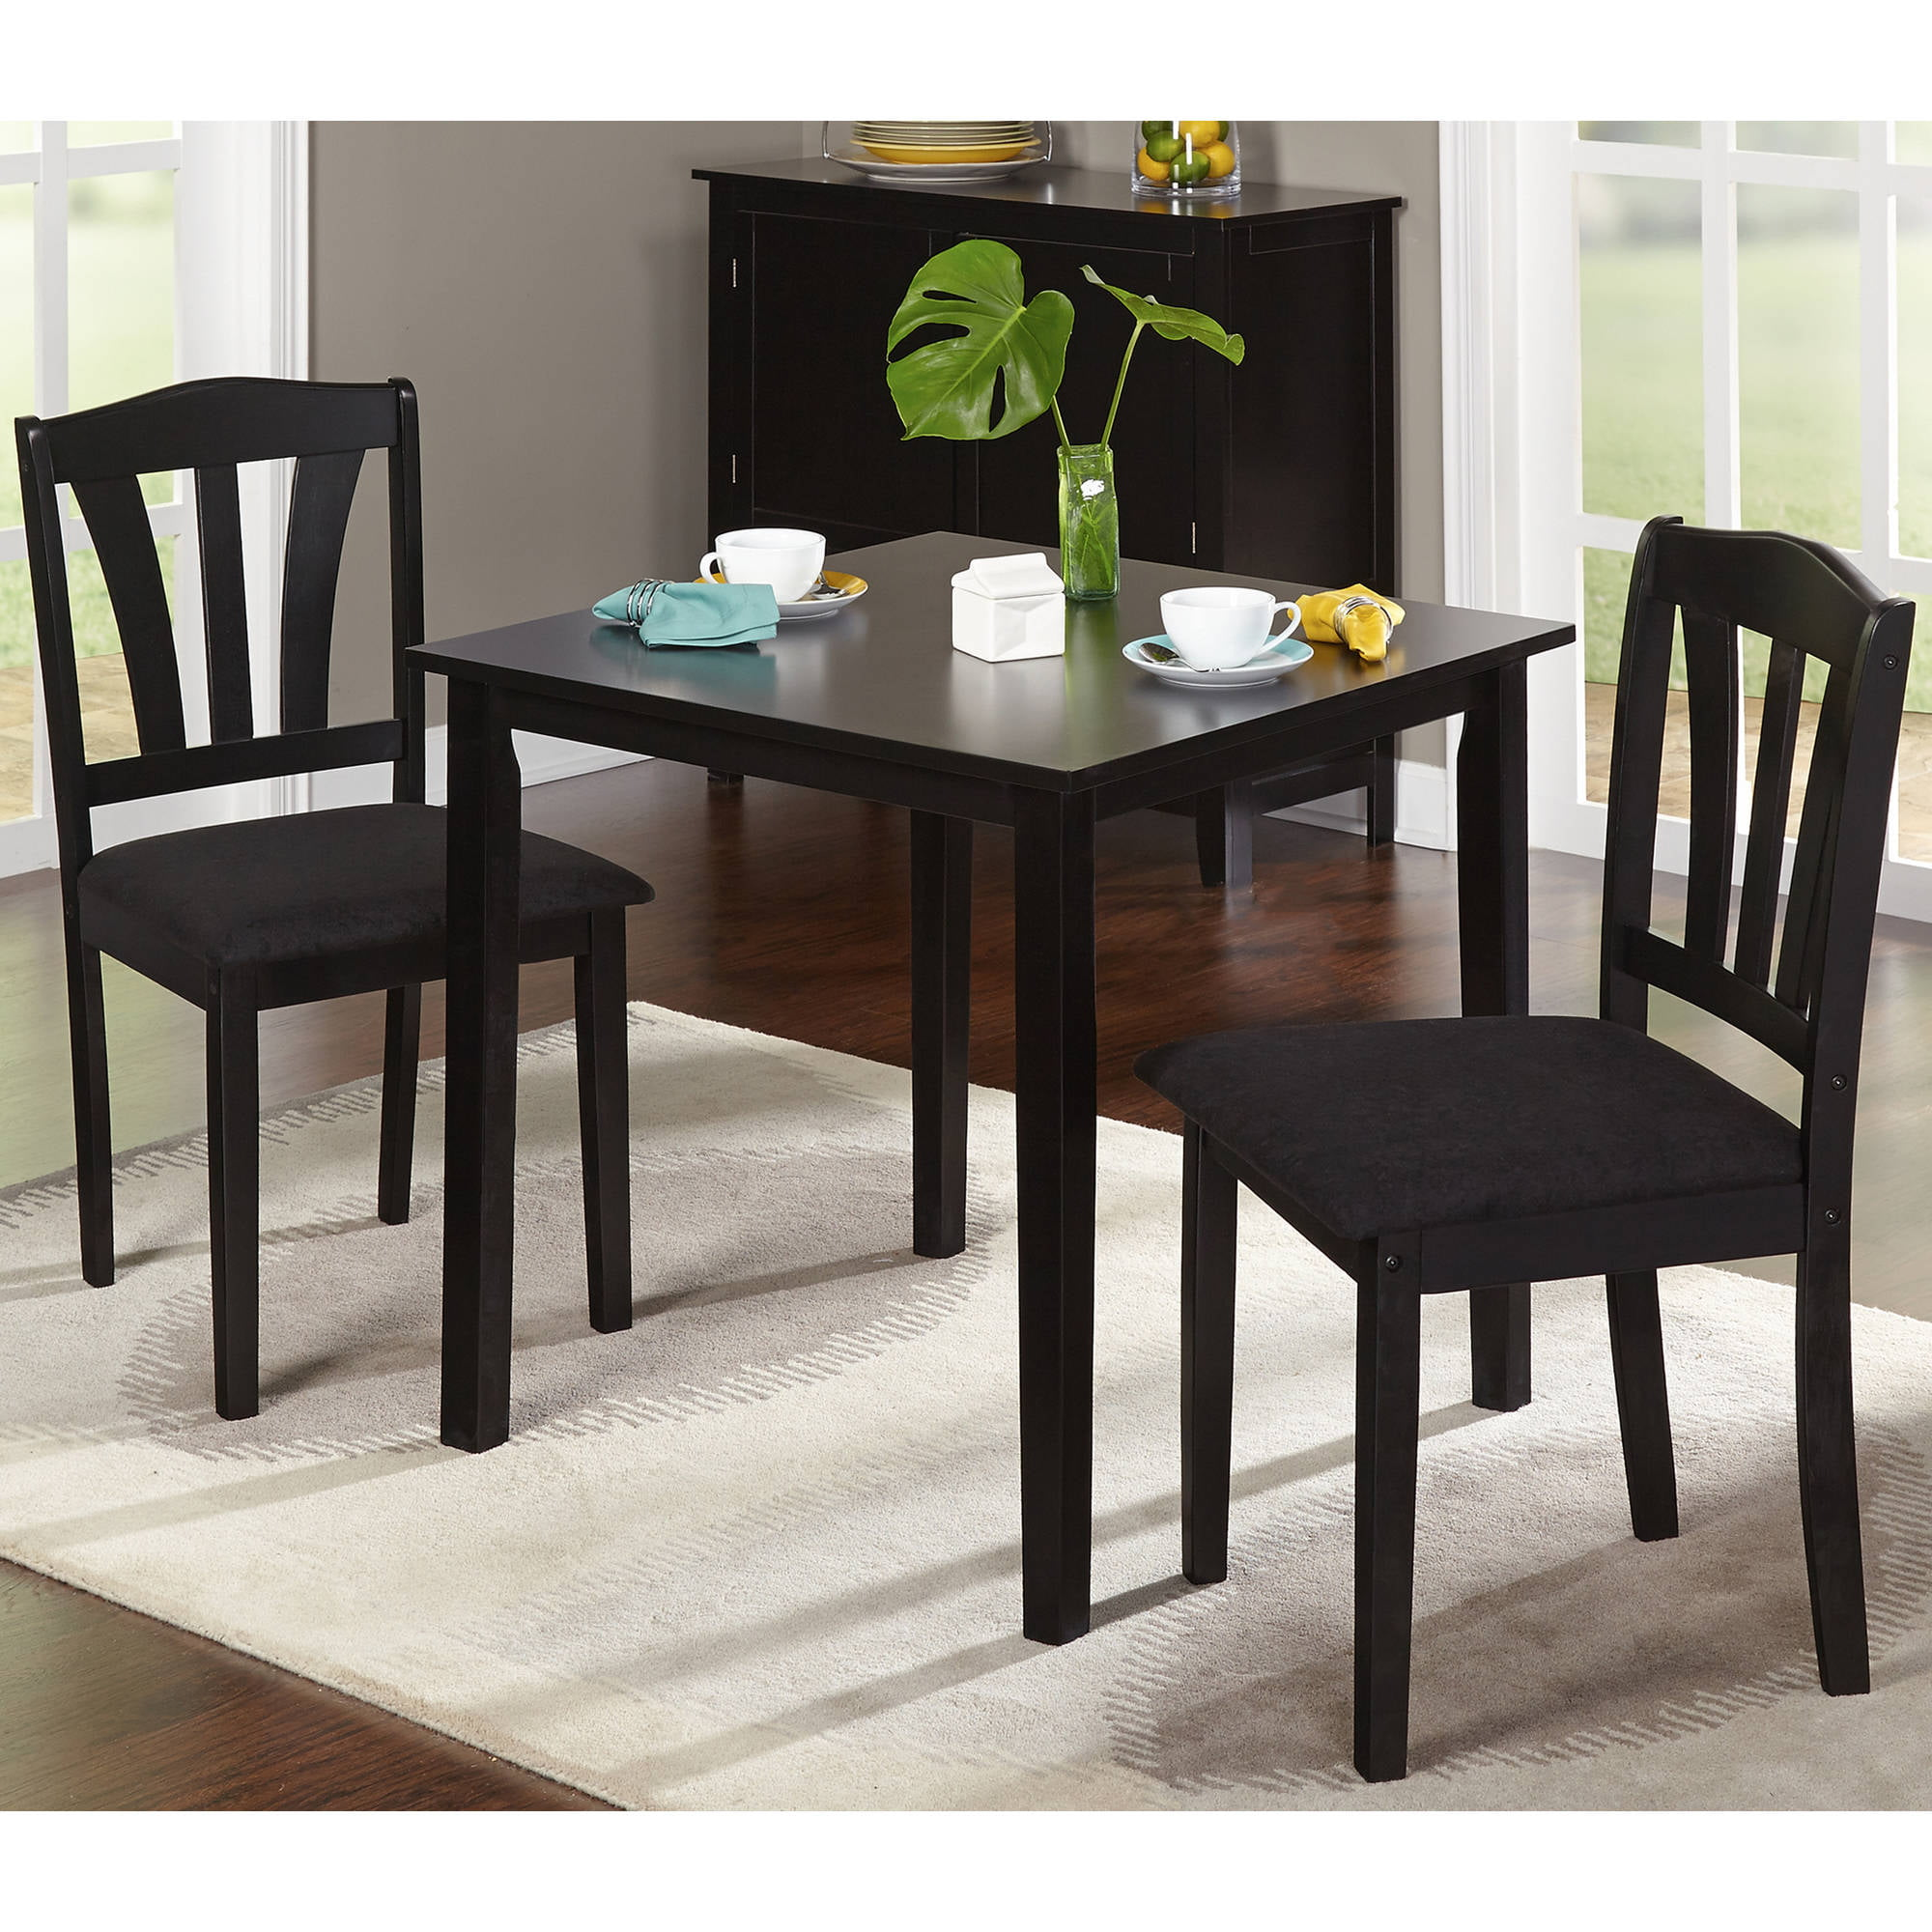 & Metropolitan 3 Piece Dining Set Multiple Finishes - Walmart.com